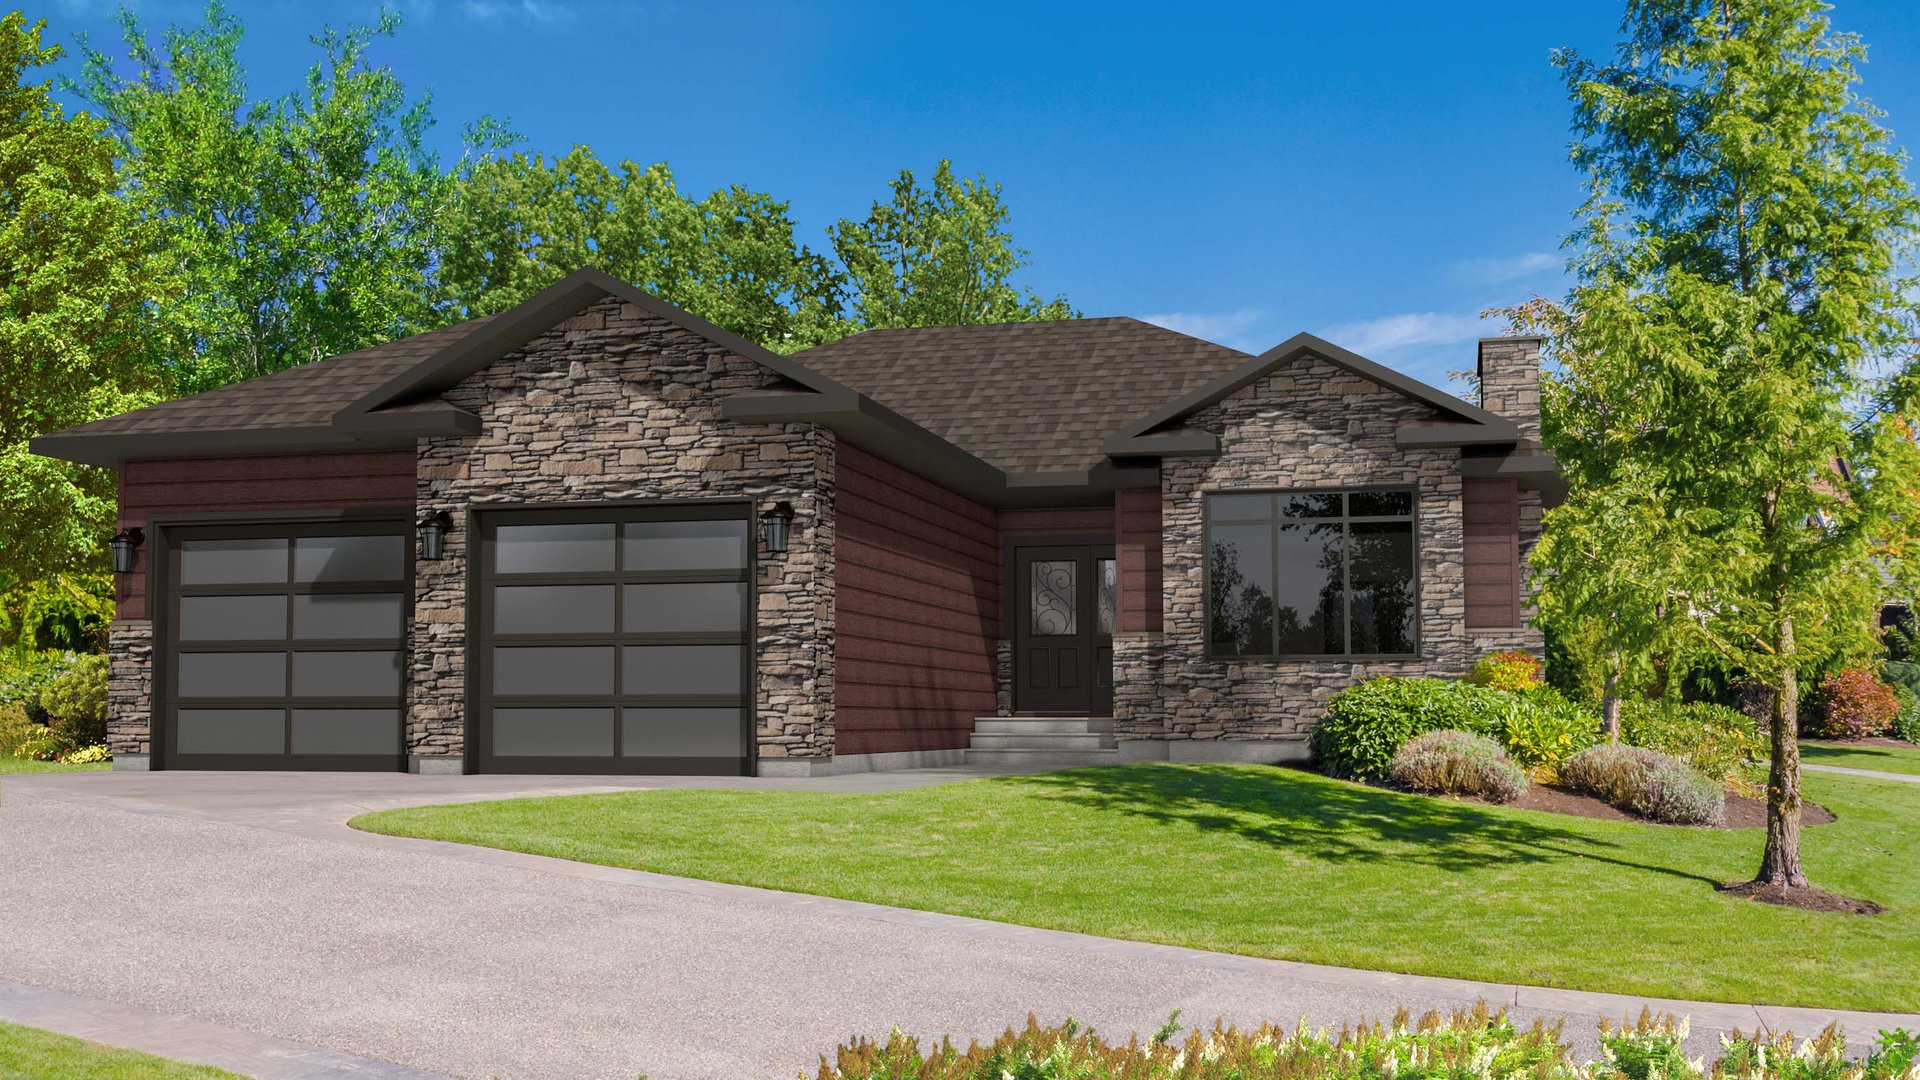 Nelson Homes modular bungalow home plans.jpg